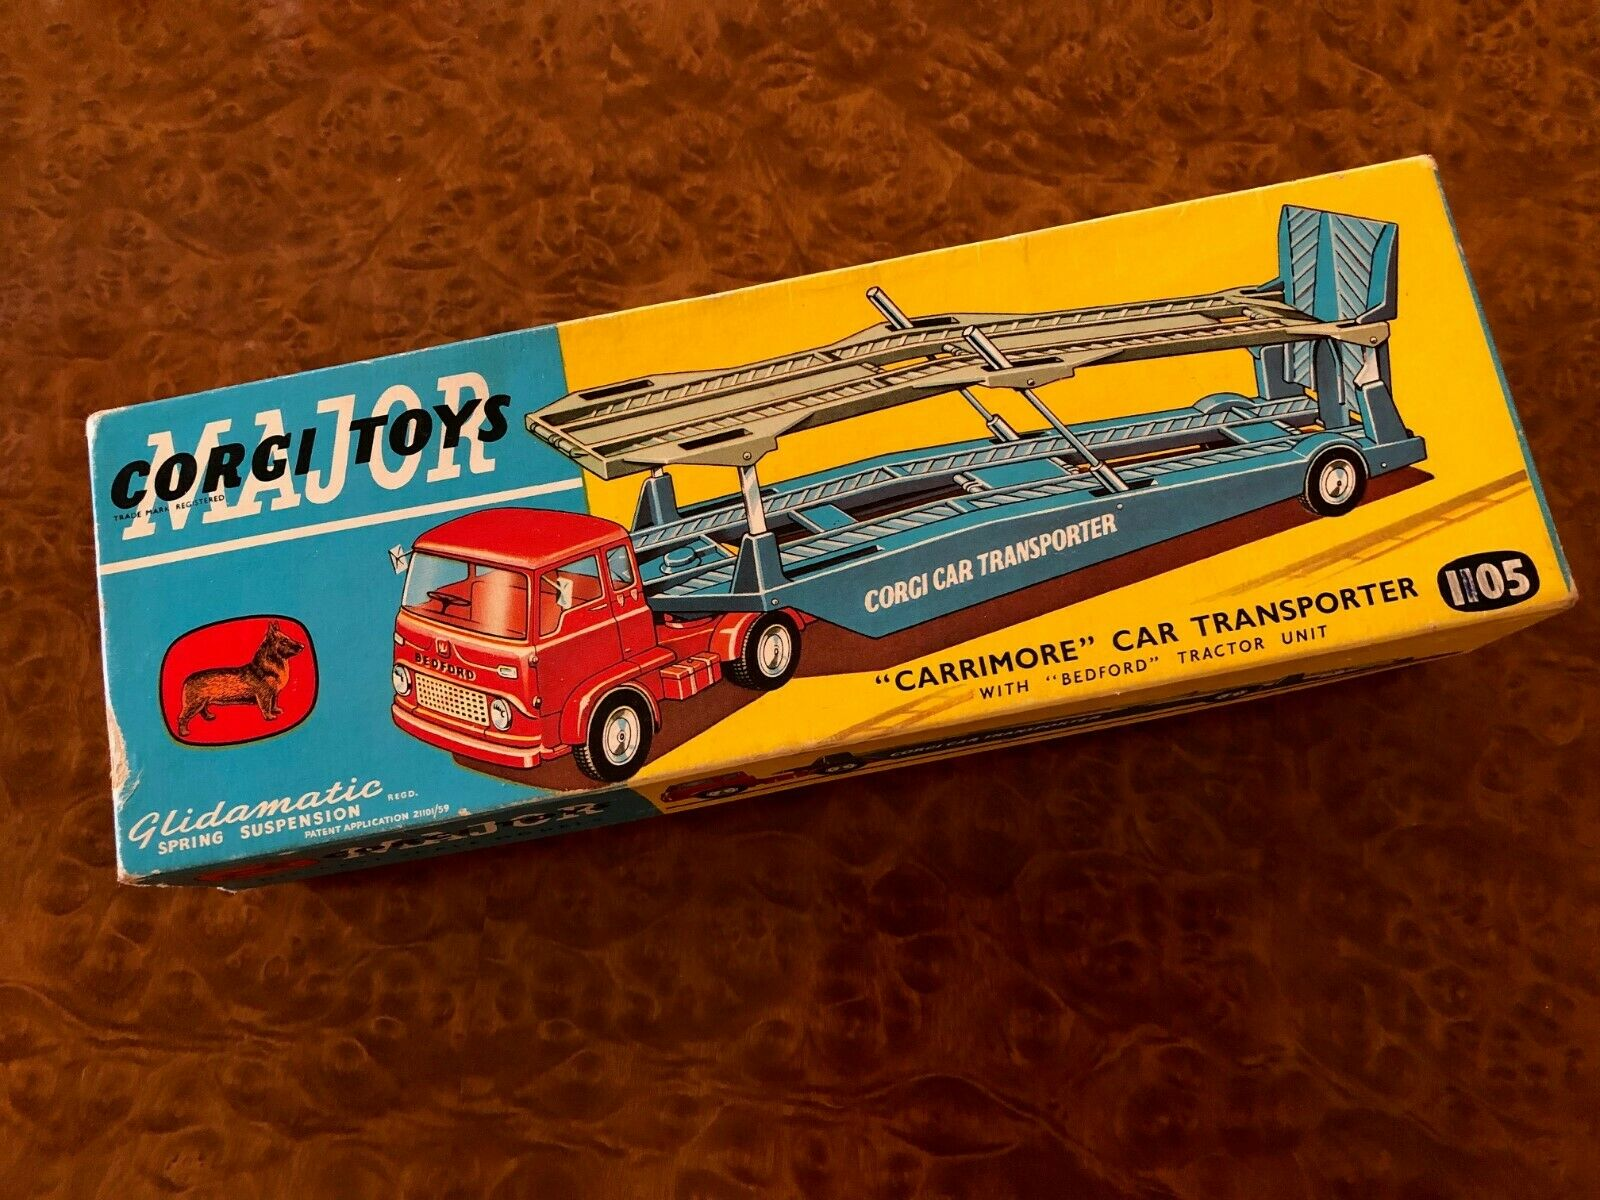 Vintage Corgi Toys Major MIB Bedford Carrimore Car Transporter No. 1105